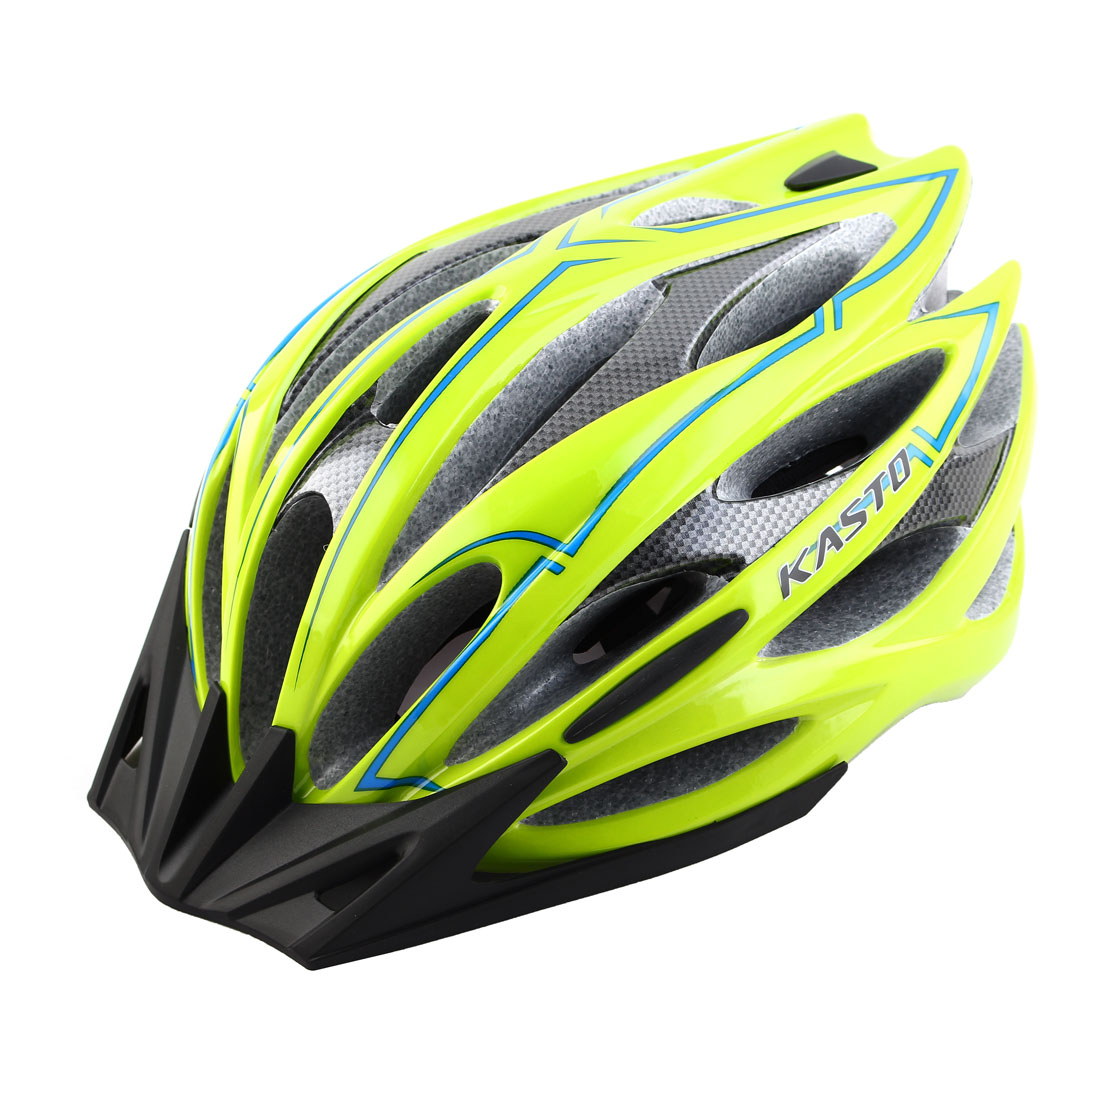 Adult Unisex 25 Holes Rotary Regulator Cycling Cap Head Safety Protector Hat Portable Biking Helmet Green